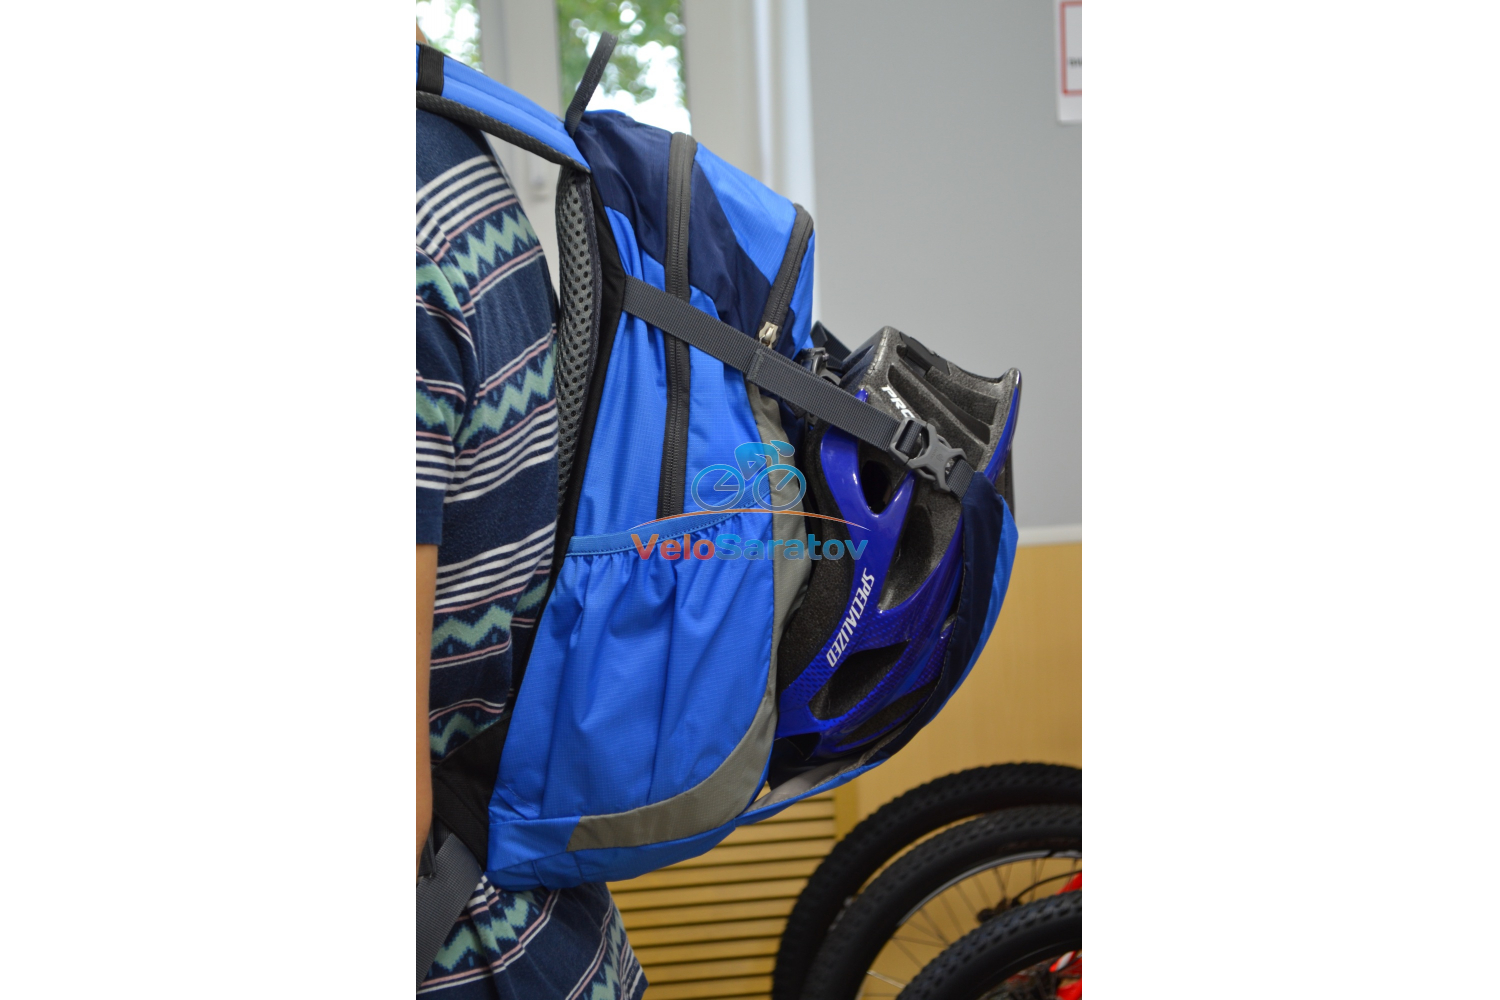 Рюкзаки Рюкзак Deuter Cross Bike 18 2019 Артикул 4046051049342, 4046051049359